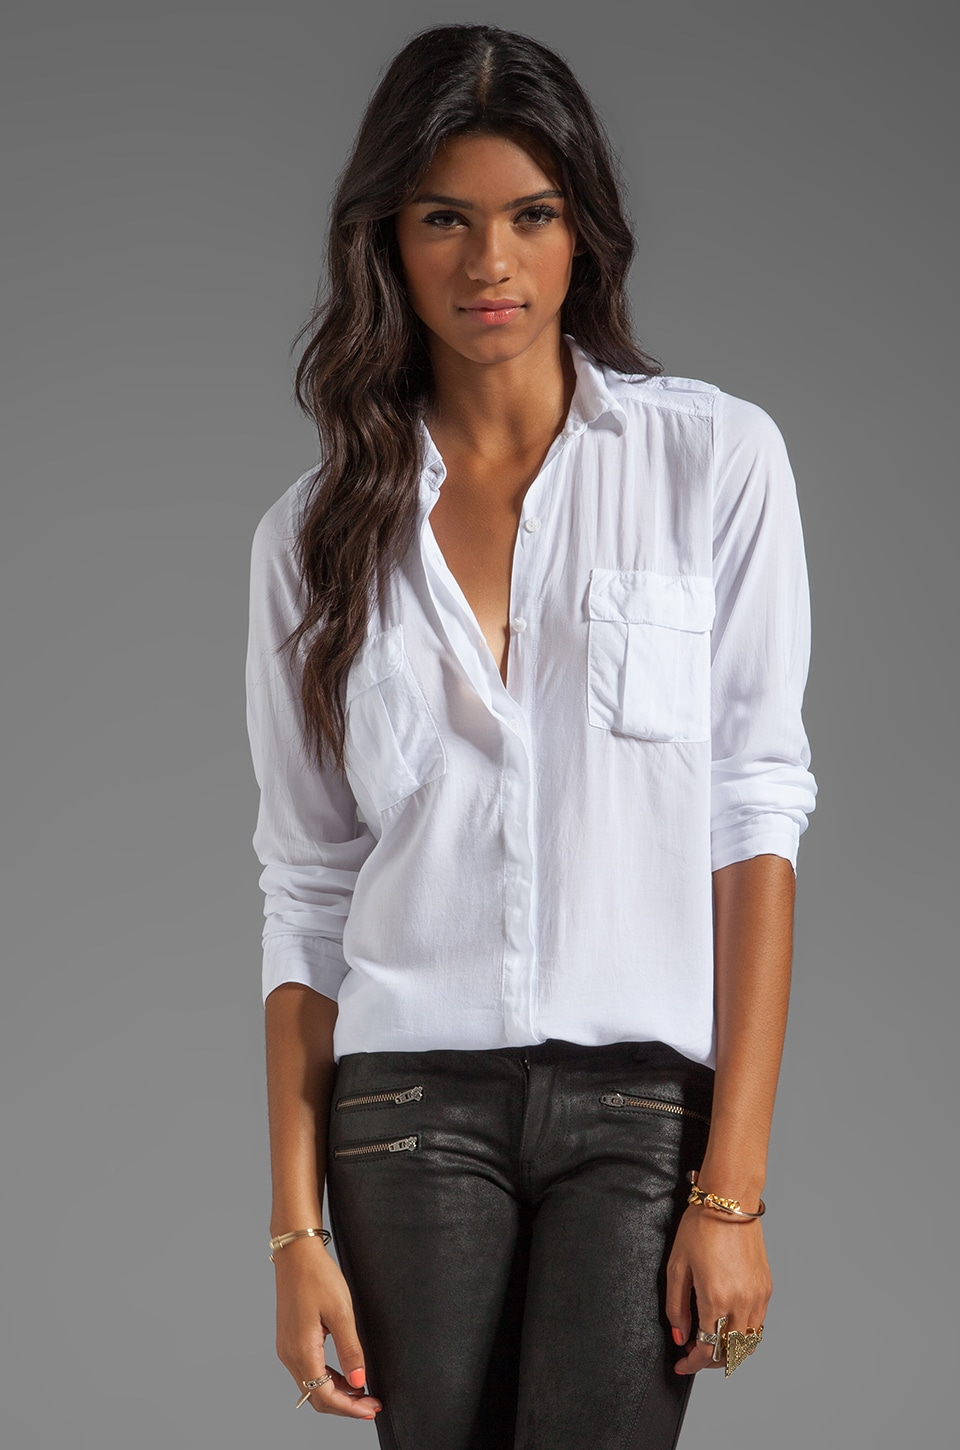 Splendid Shirting Long Sleeve Blouse in White